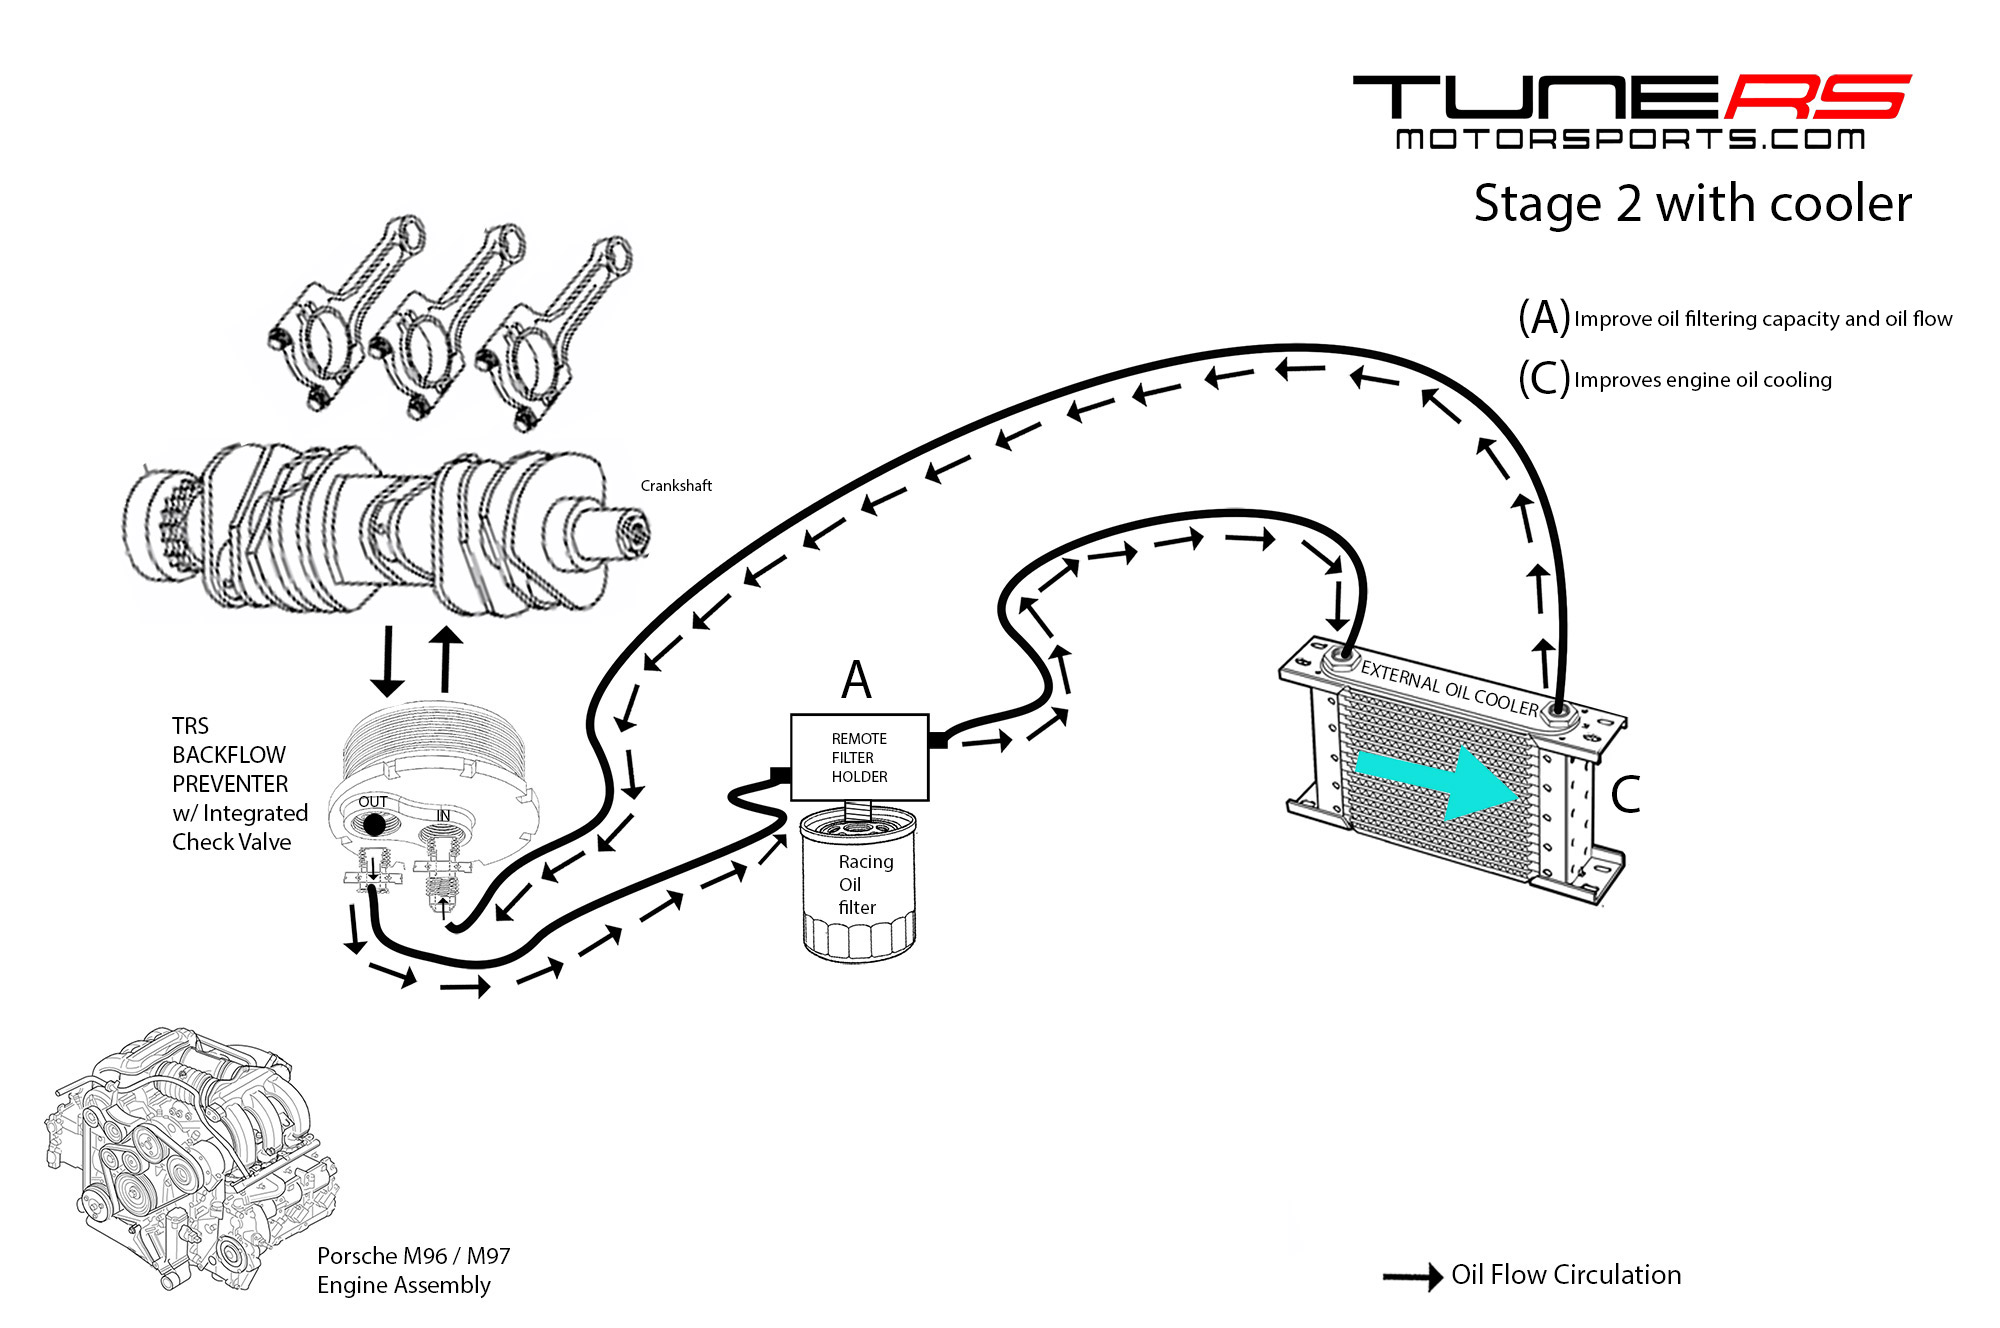 hight resolution of stage 2 with cooler